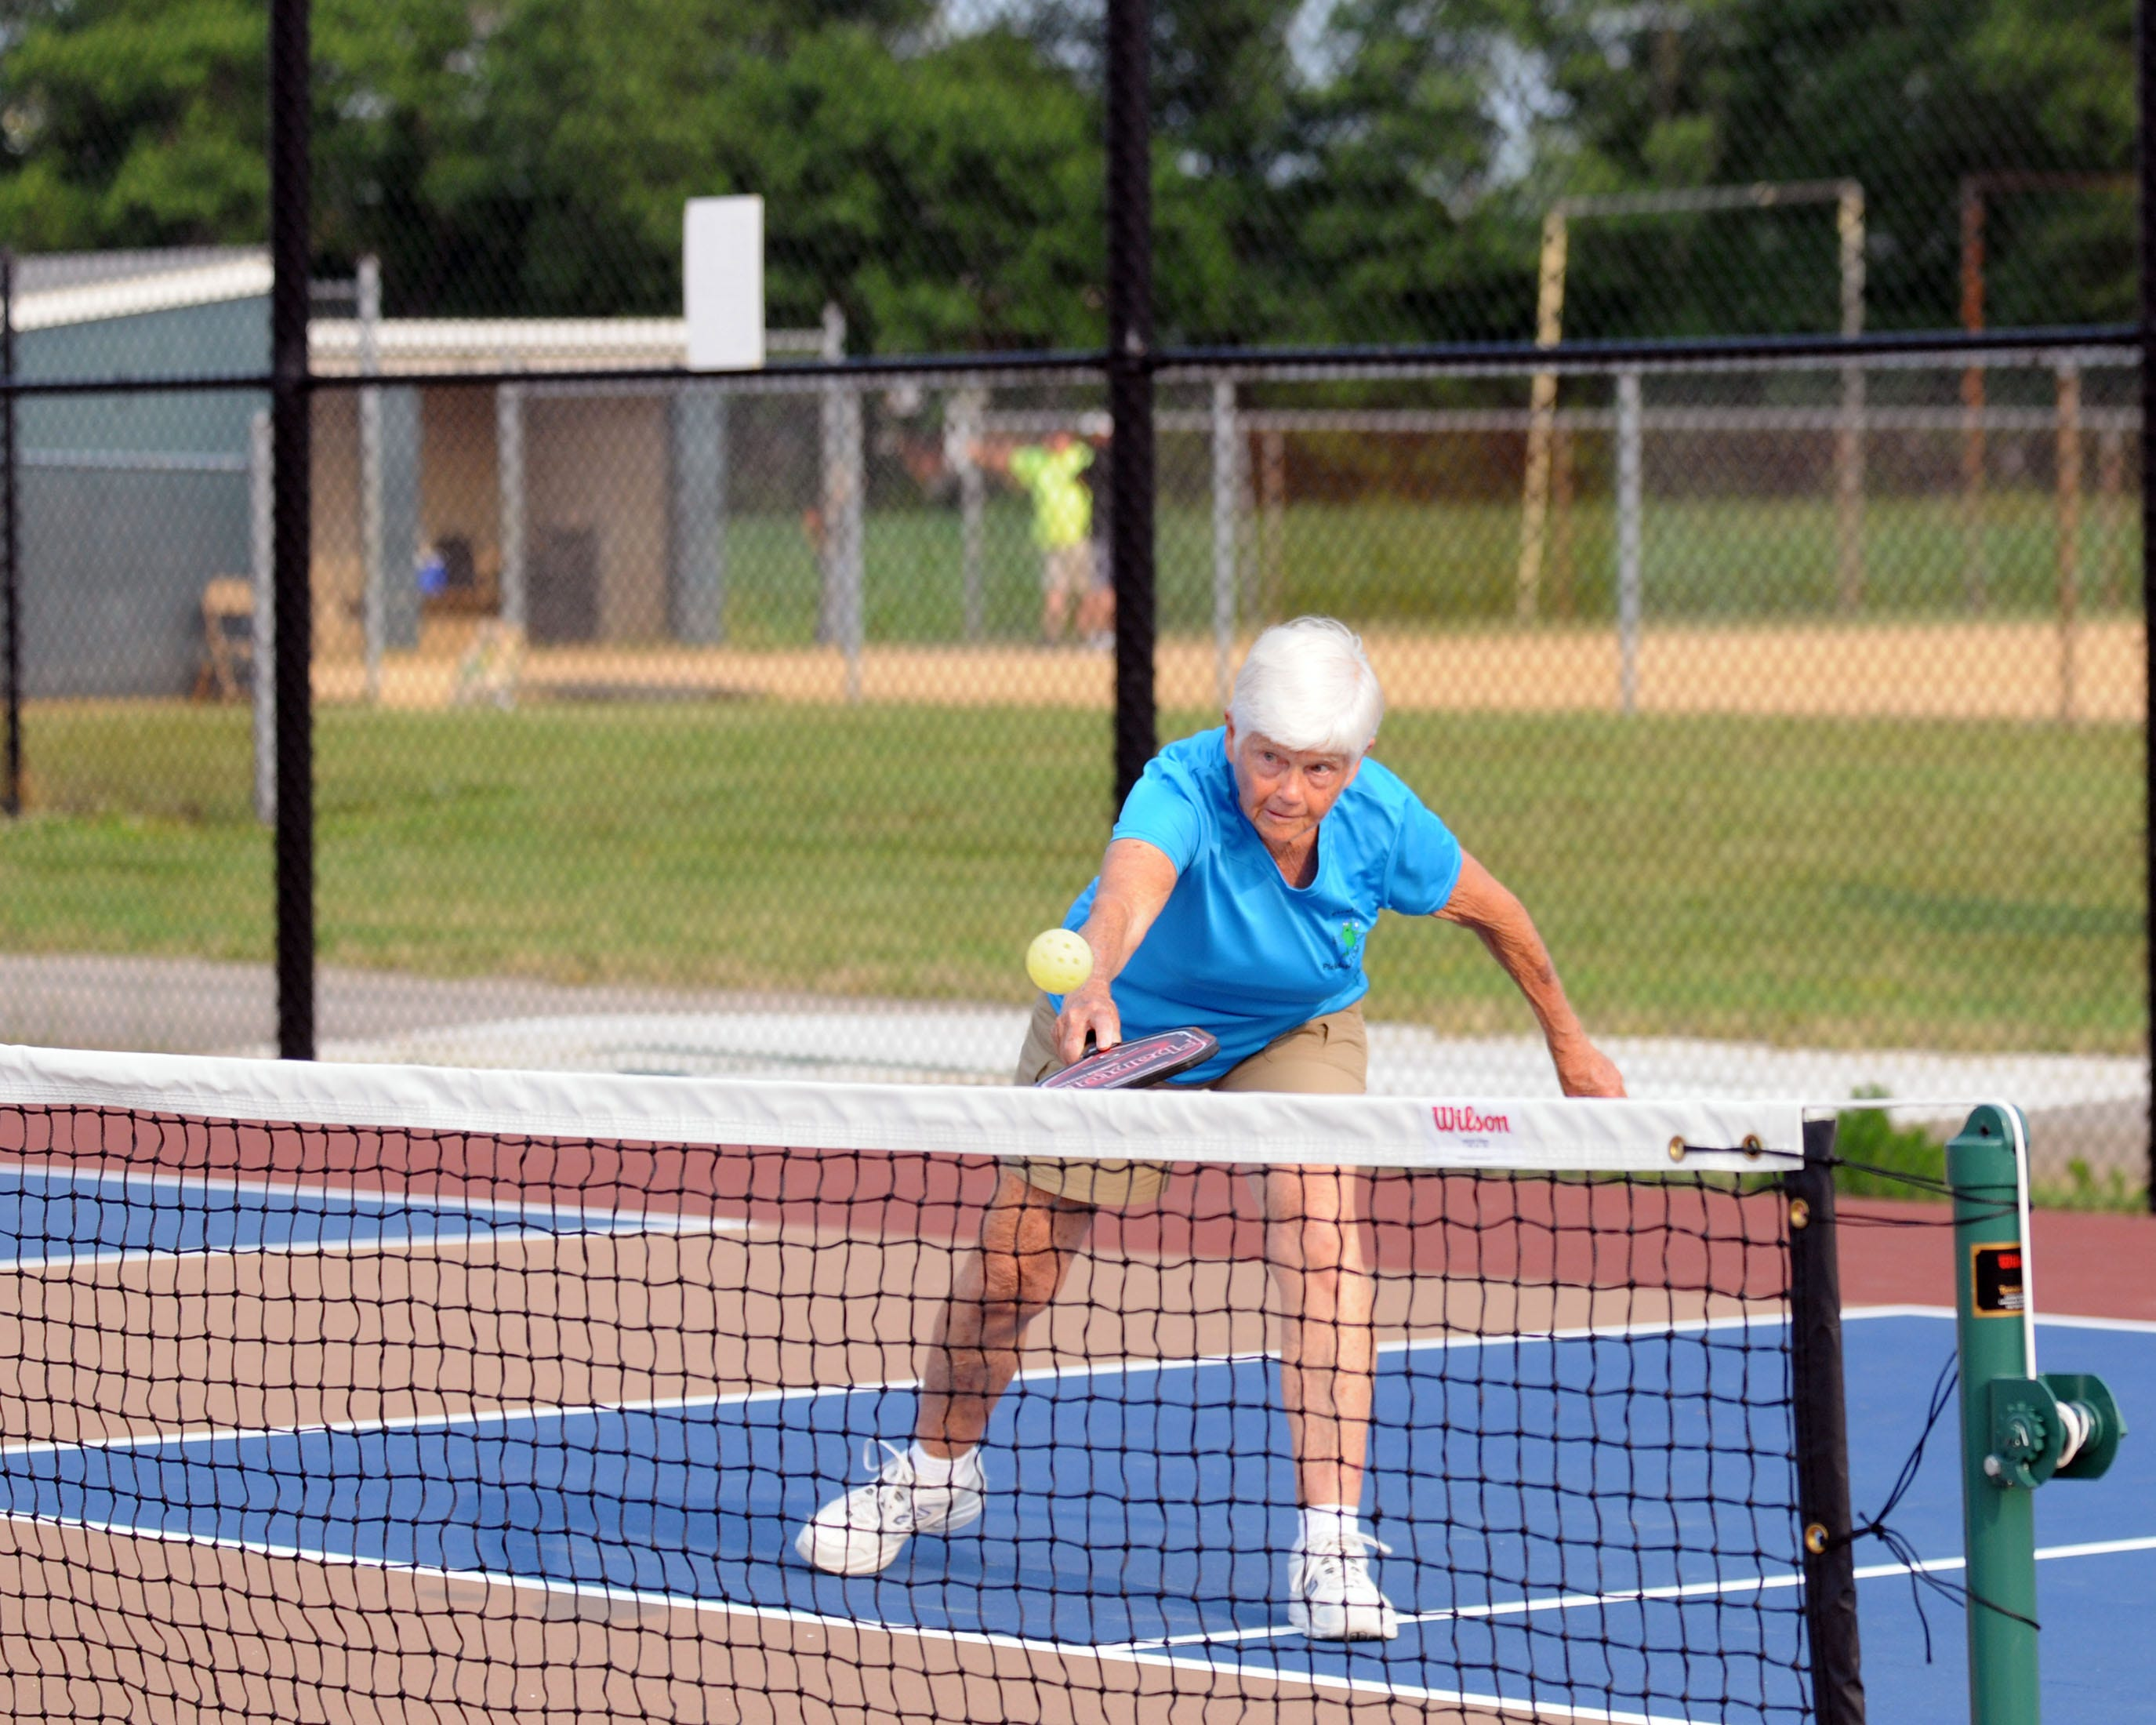 Now with its own courts in Frankford, Pickleball is becoming an activity for all ages on Delmarva.